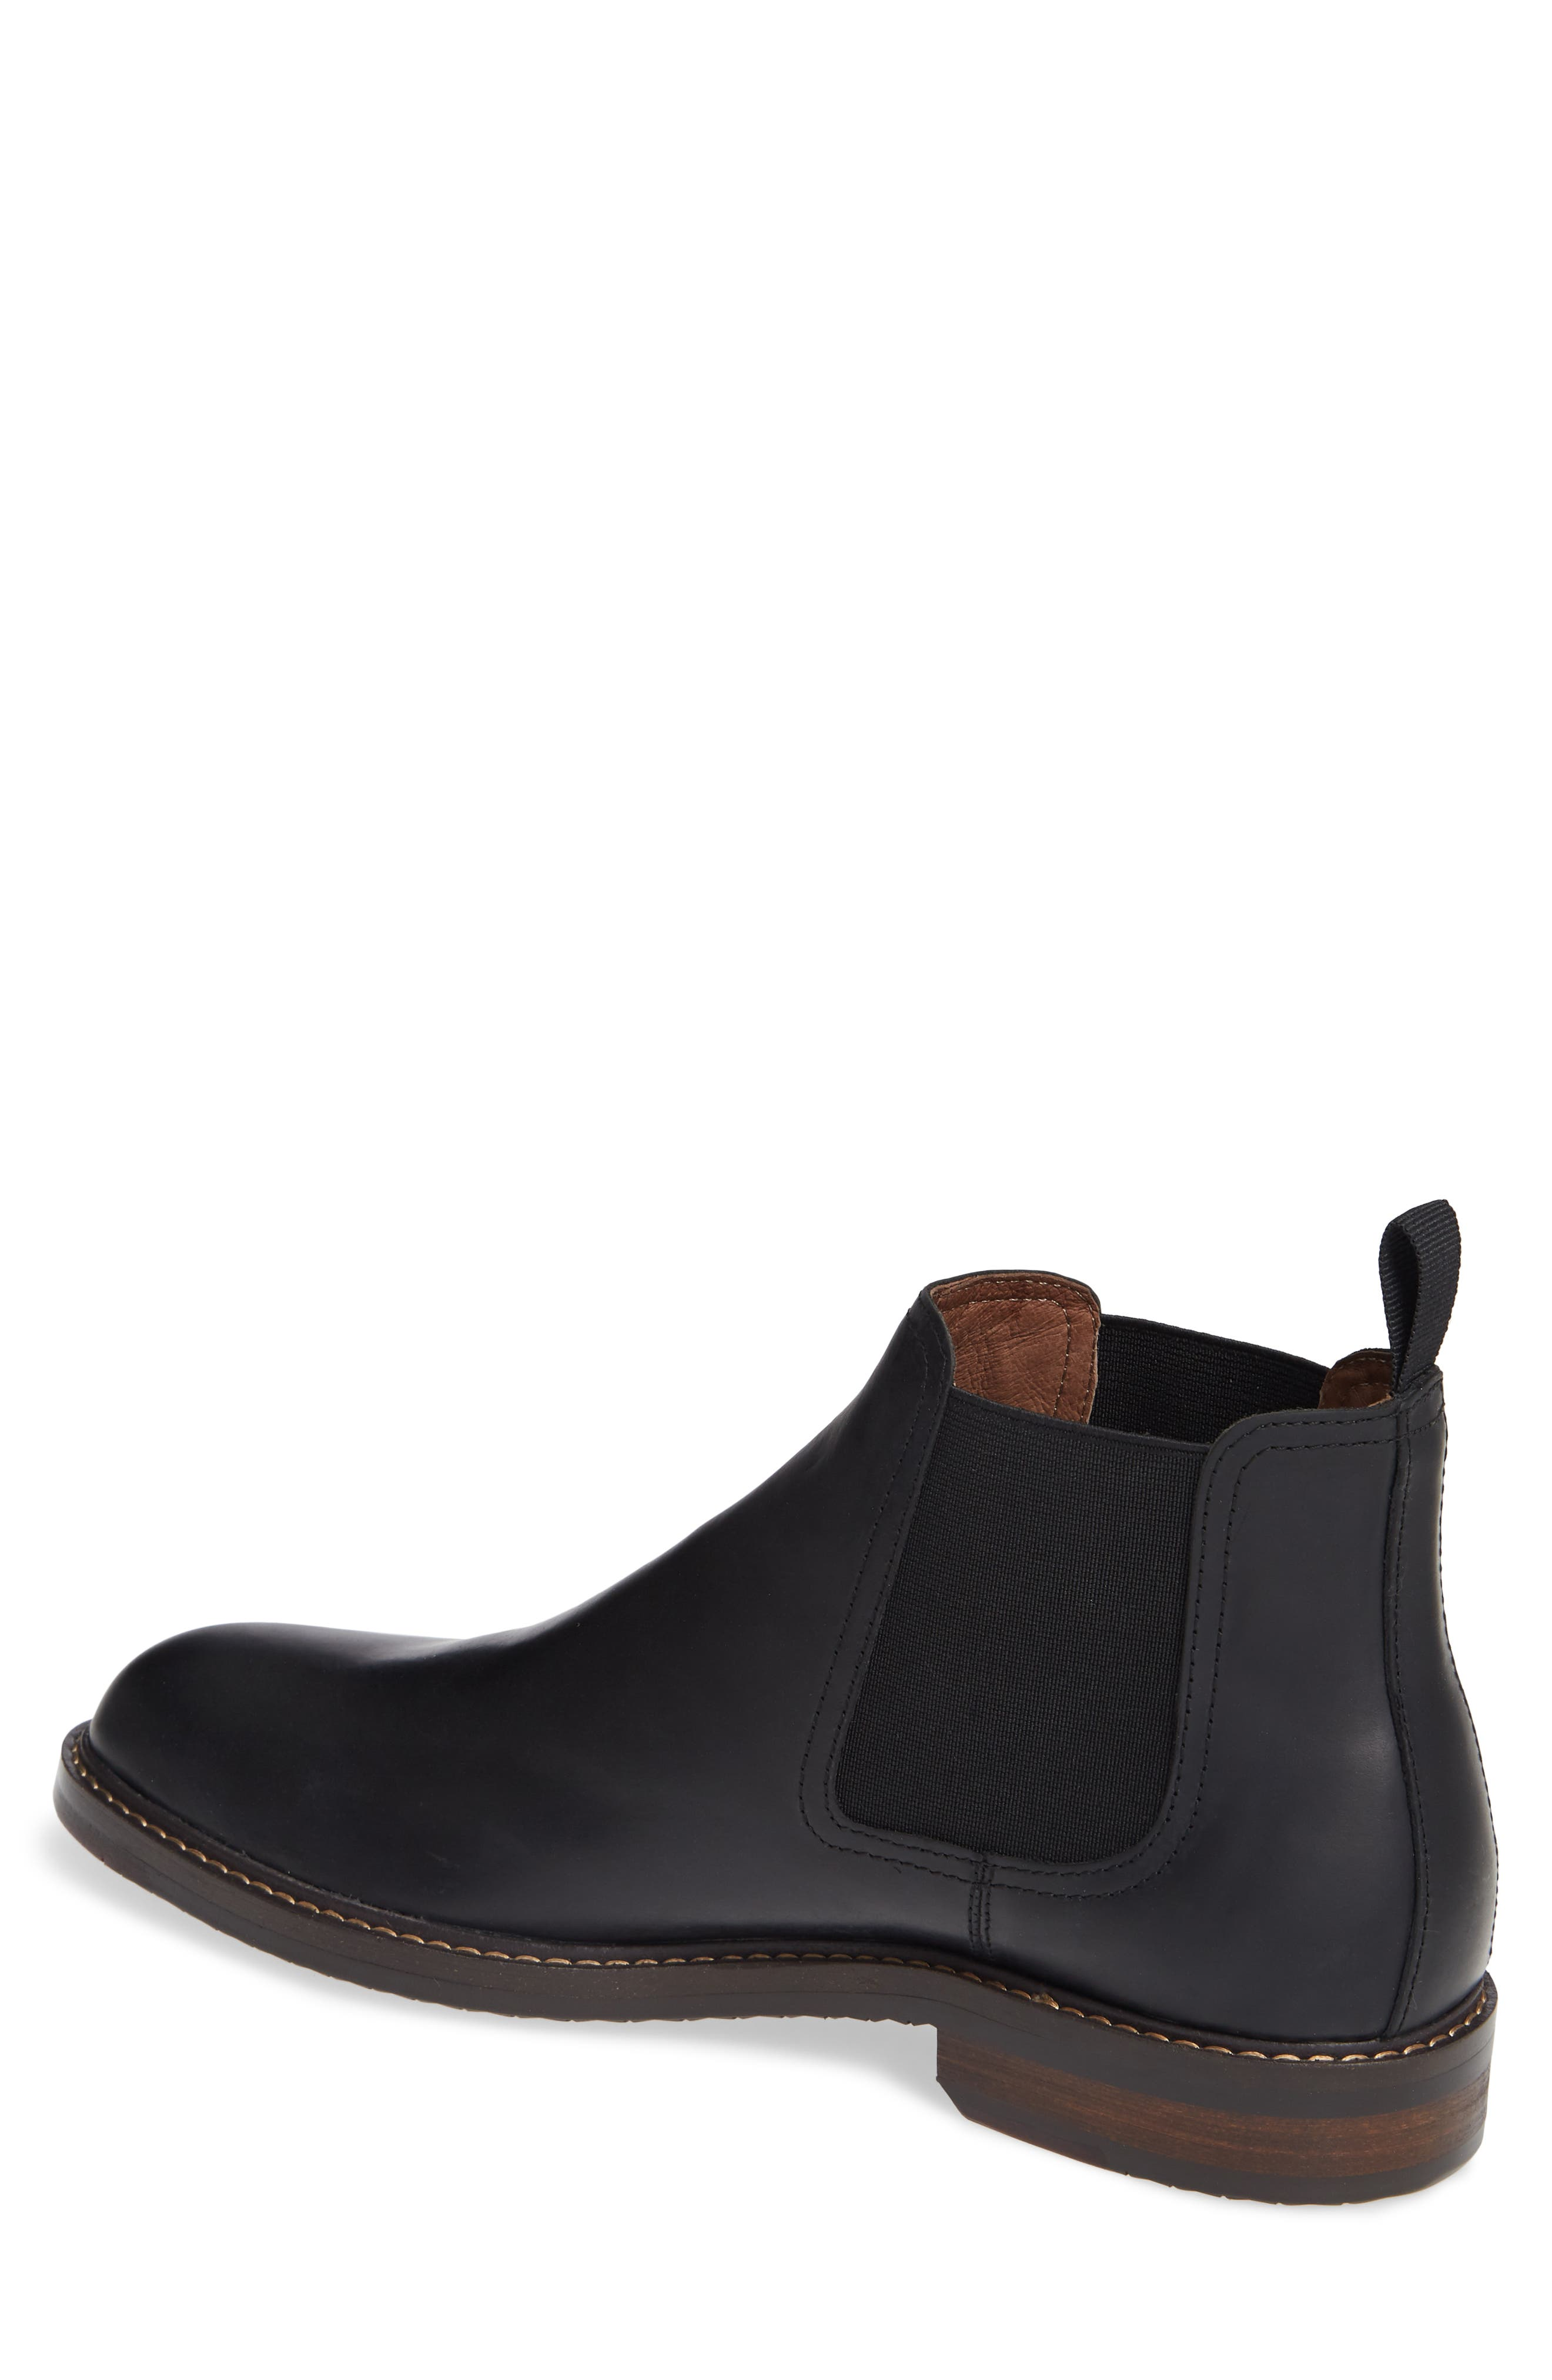 Brooks Chelsea Boot,                             Alternate thumbnail 2, color,                             BLACK LEATHER